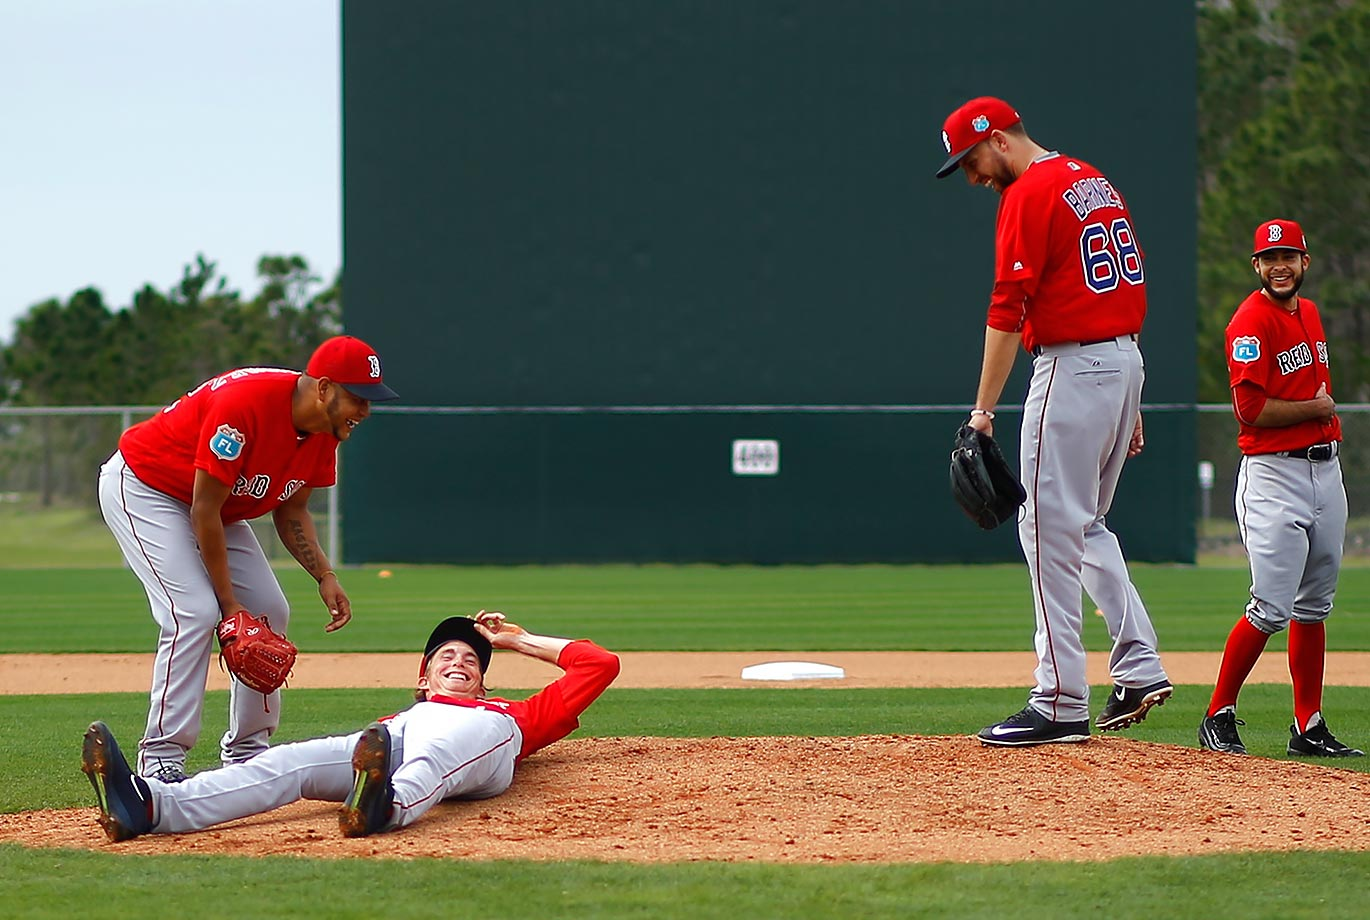 Teammates laugh after Boston Red Sox pitcher Henry Owens stumbled and fell during a fielding drill at a spring training baseball workout in Fort Myers, Fla.